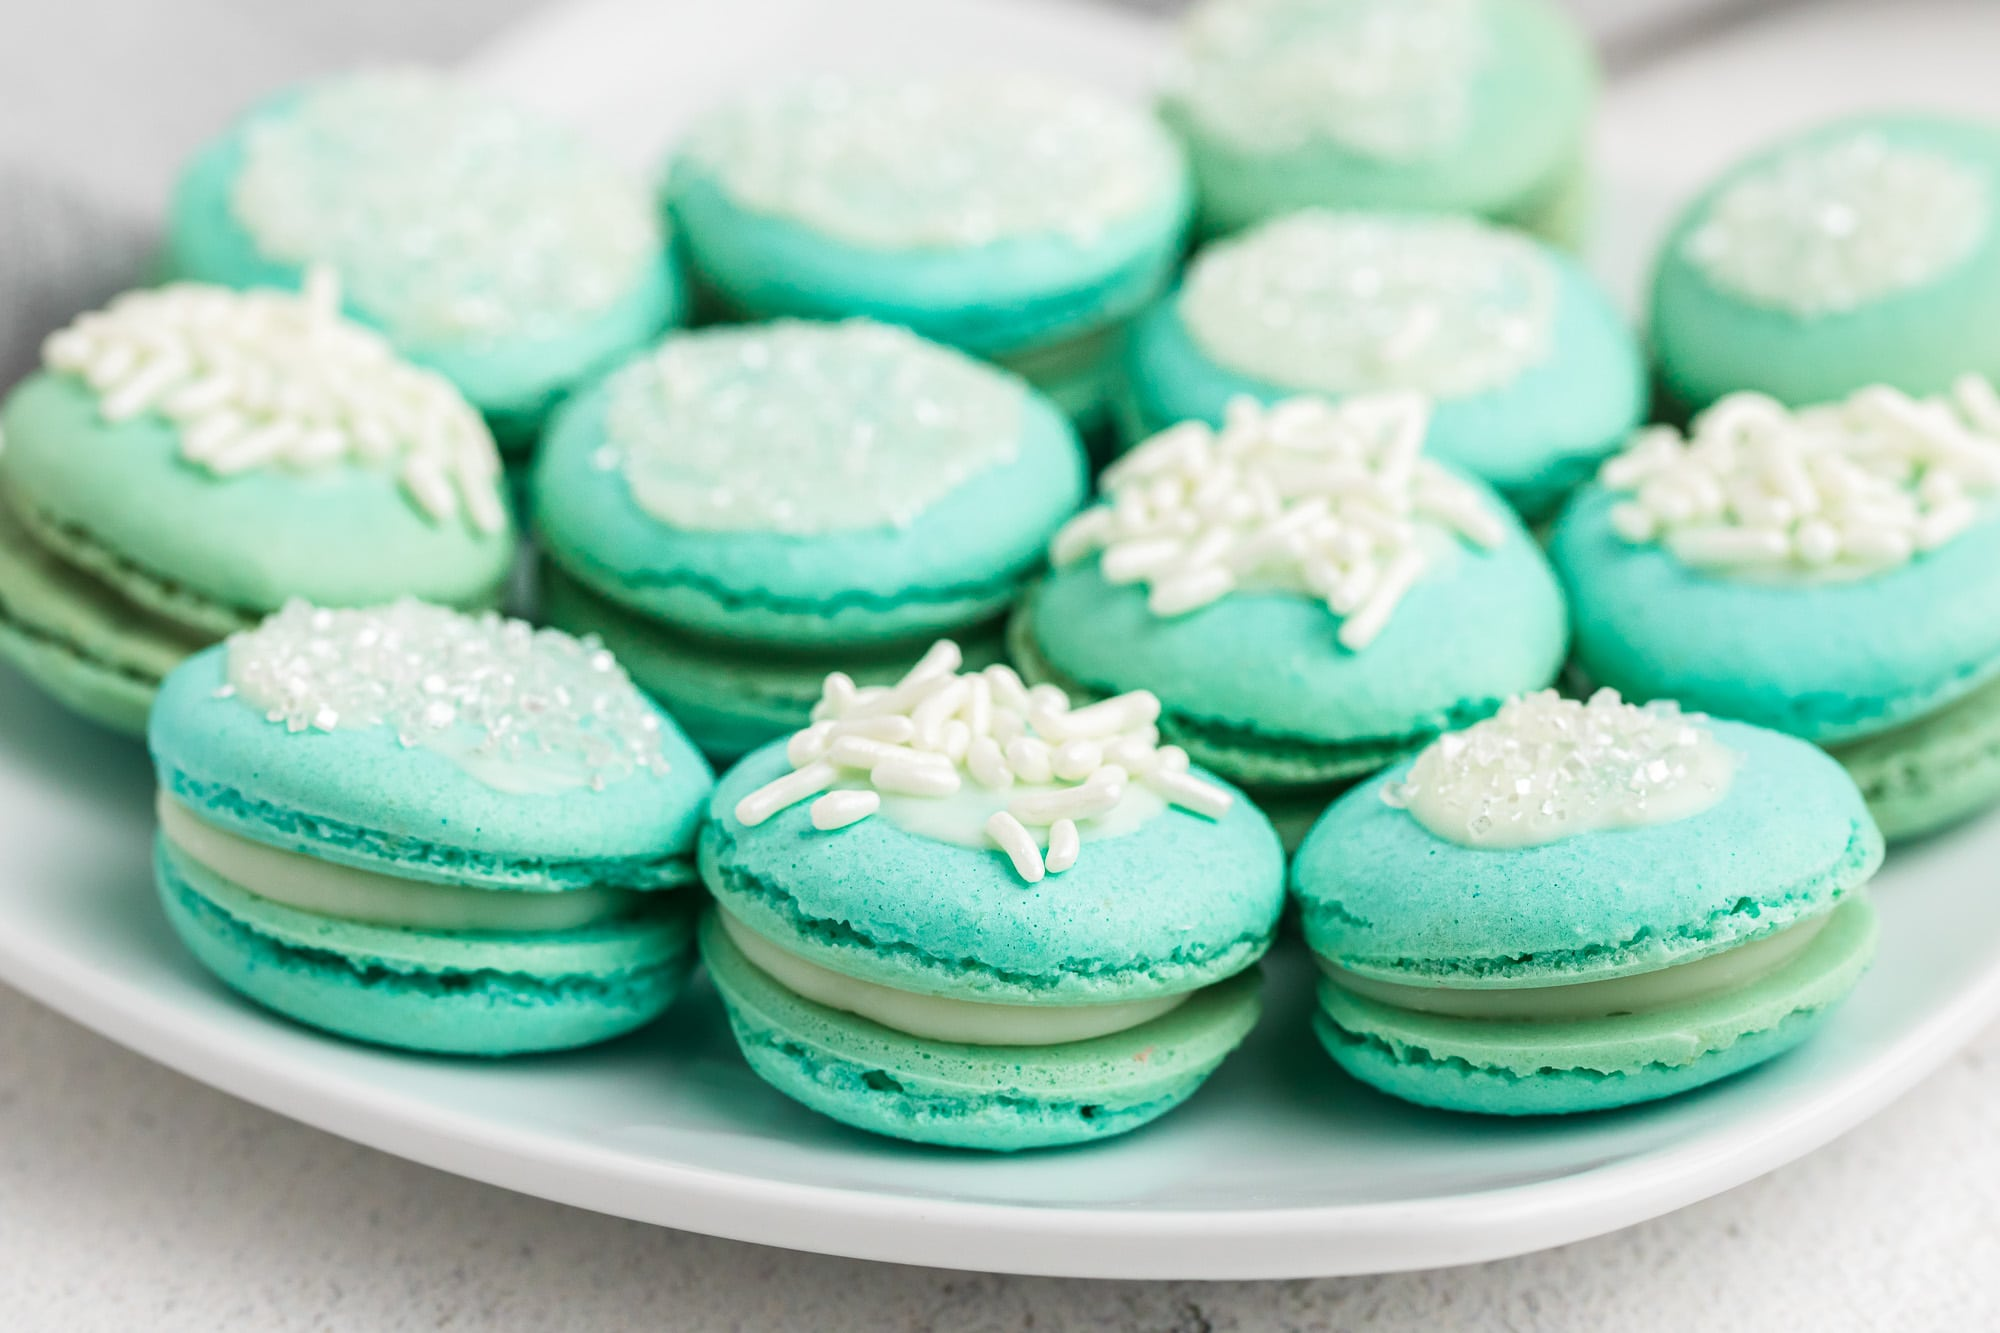 fancy decorated blue macaron cookies on white plate